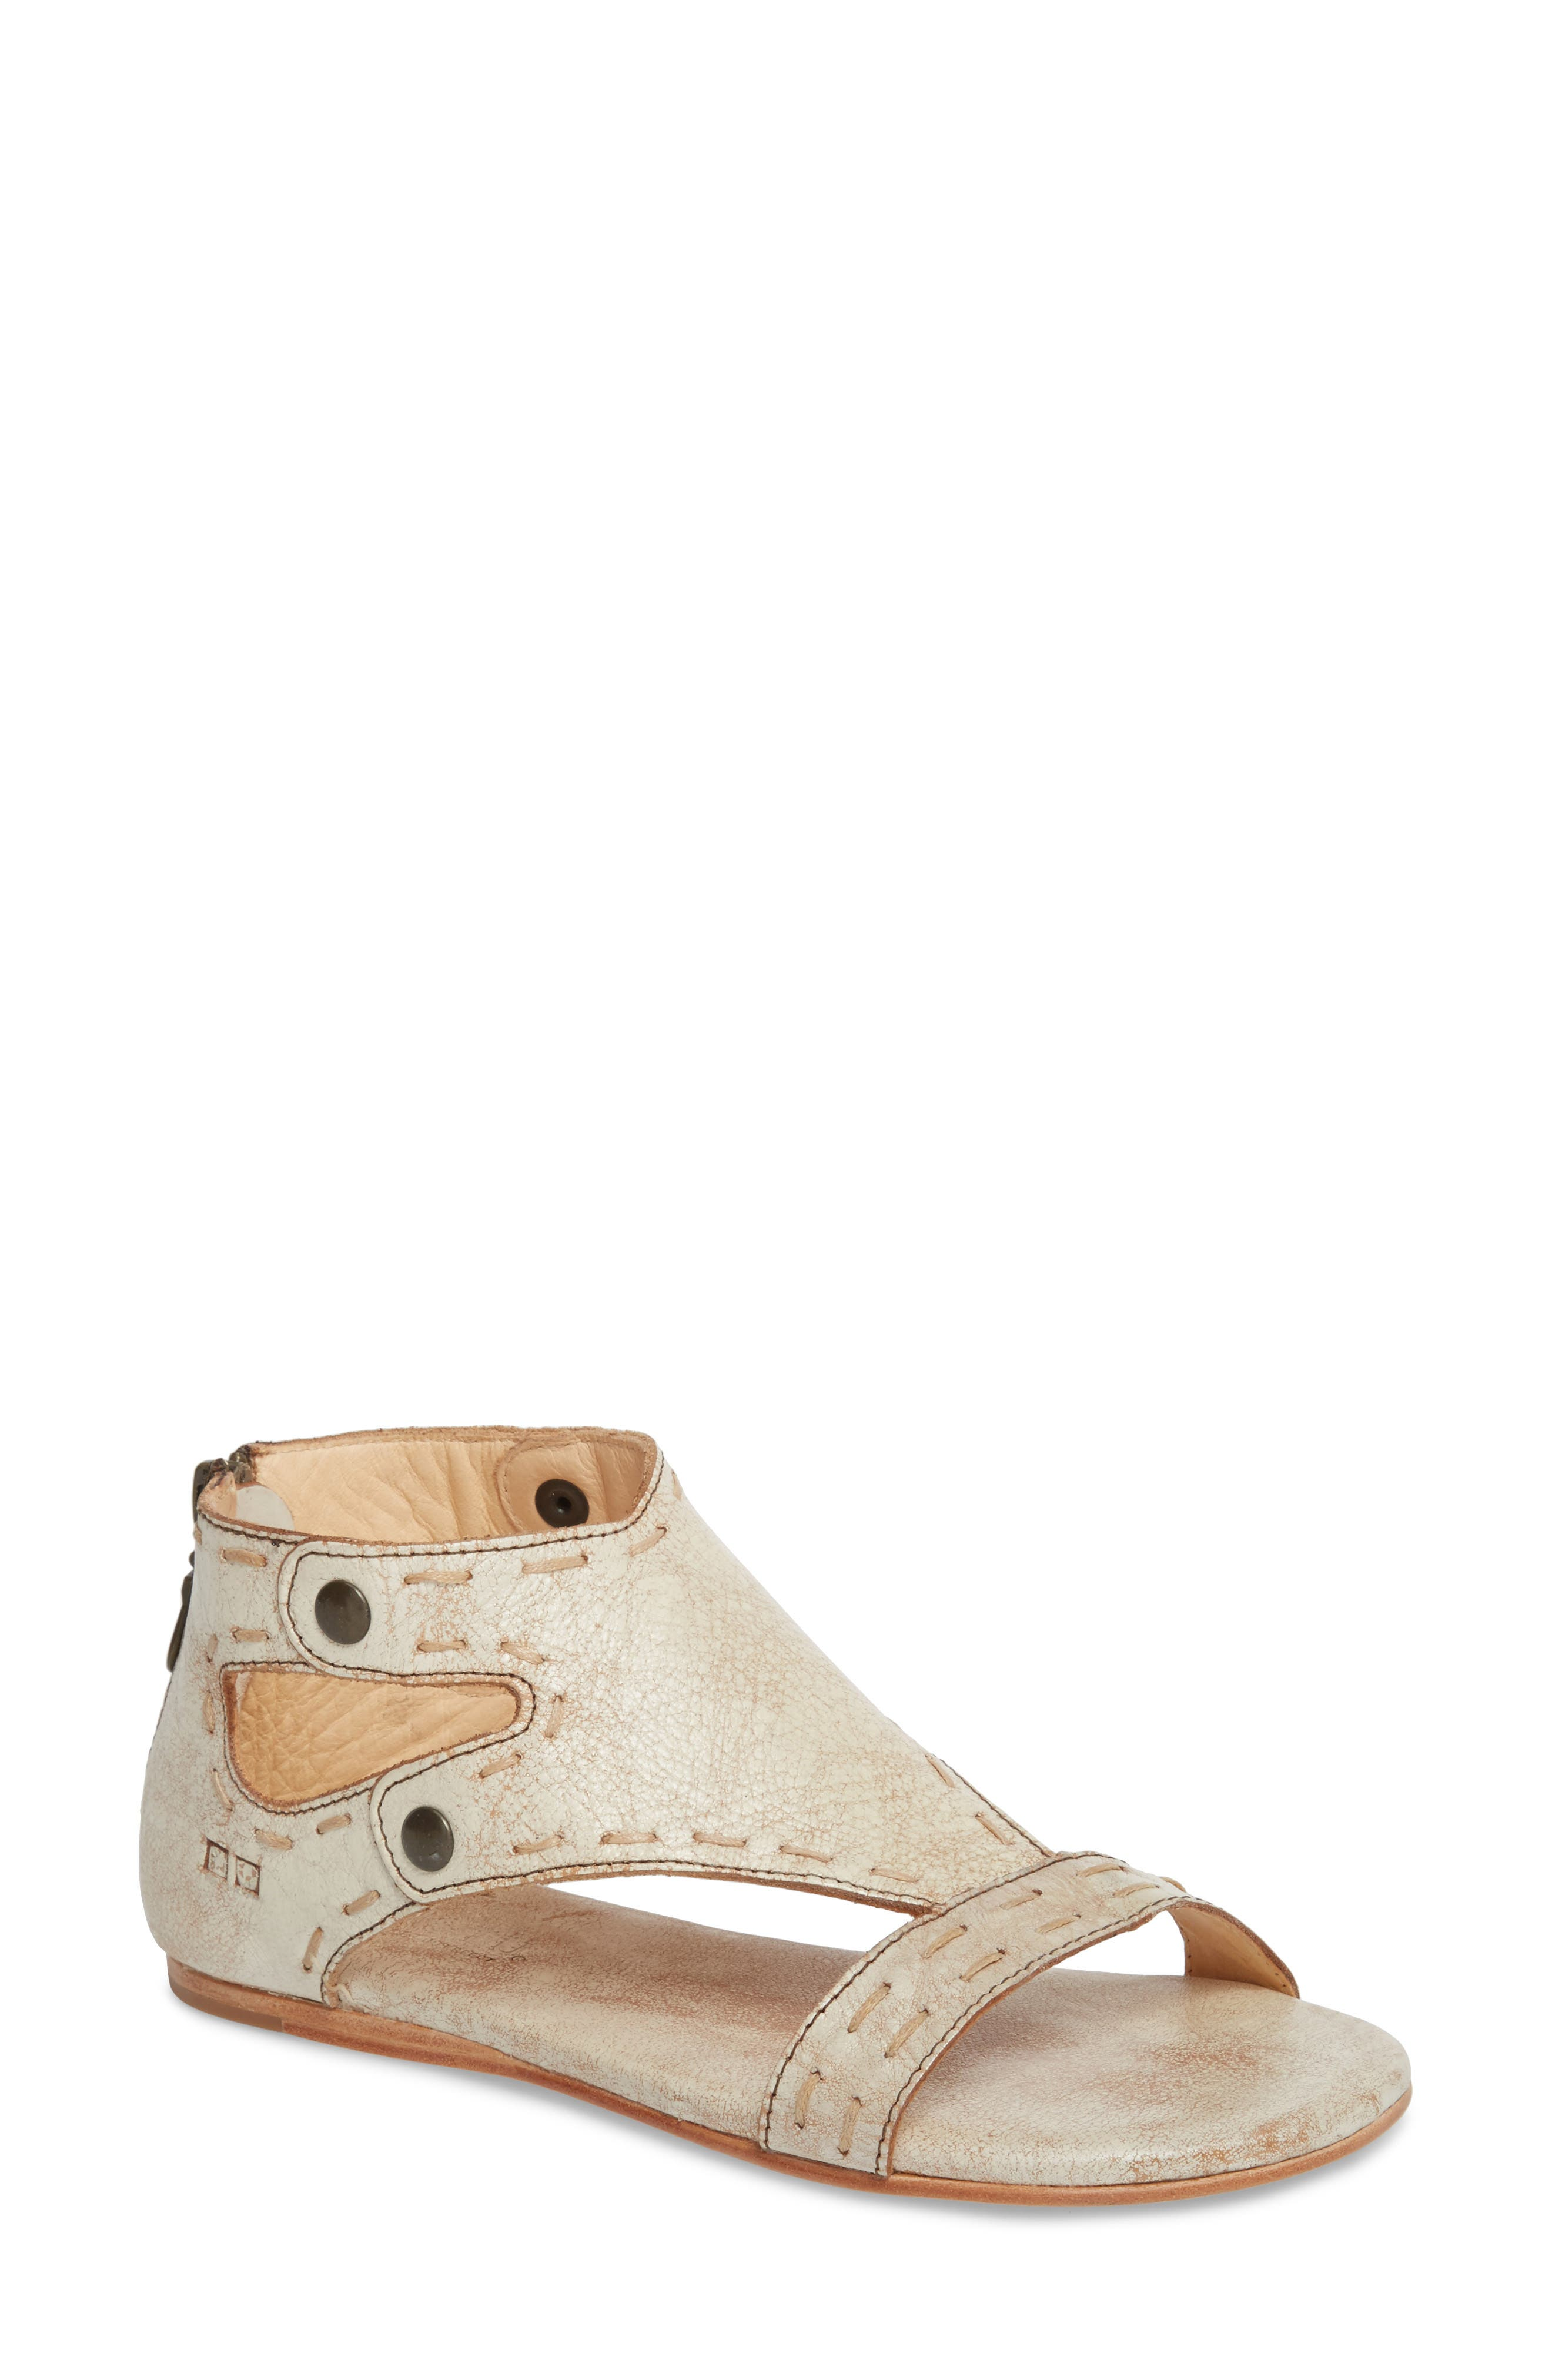 Soto Sandal,                         Main,                         color, Nectar Leather